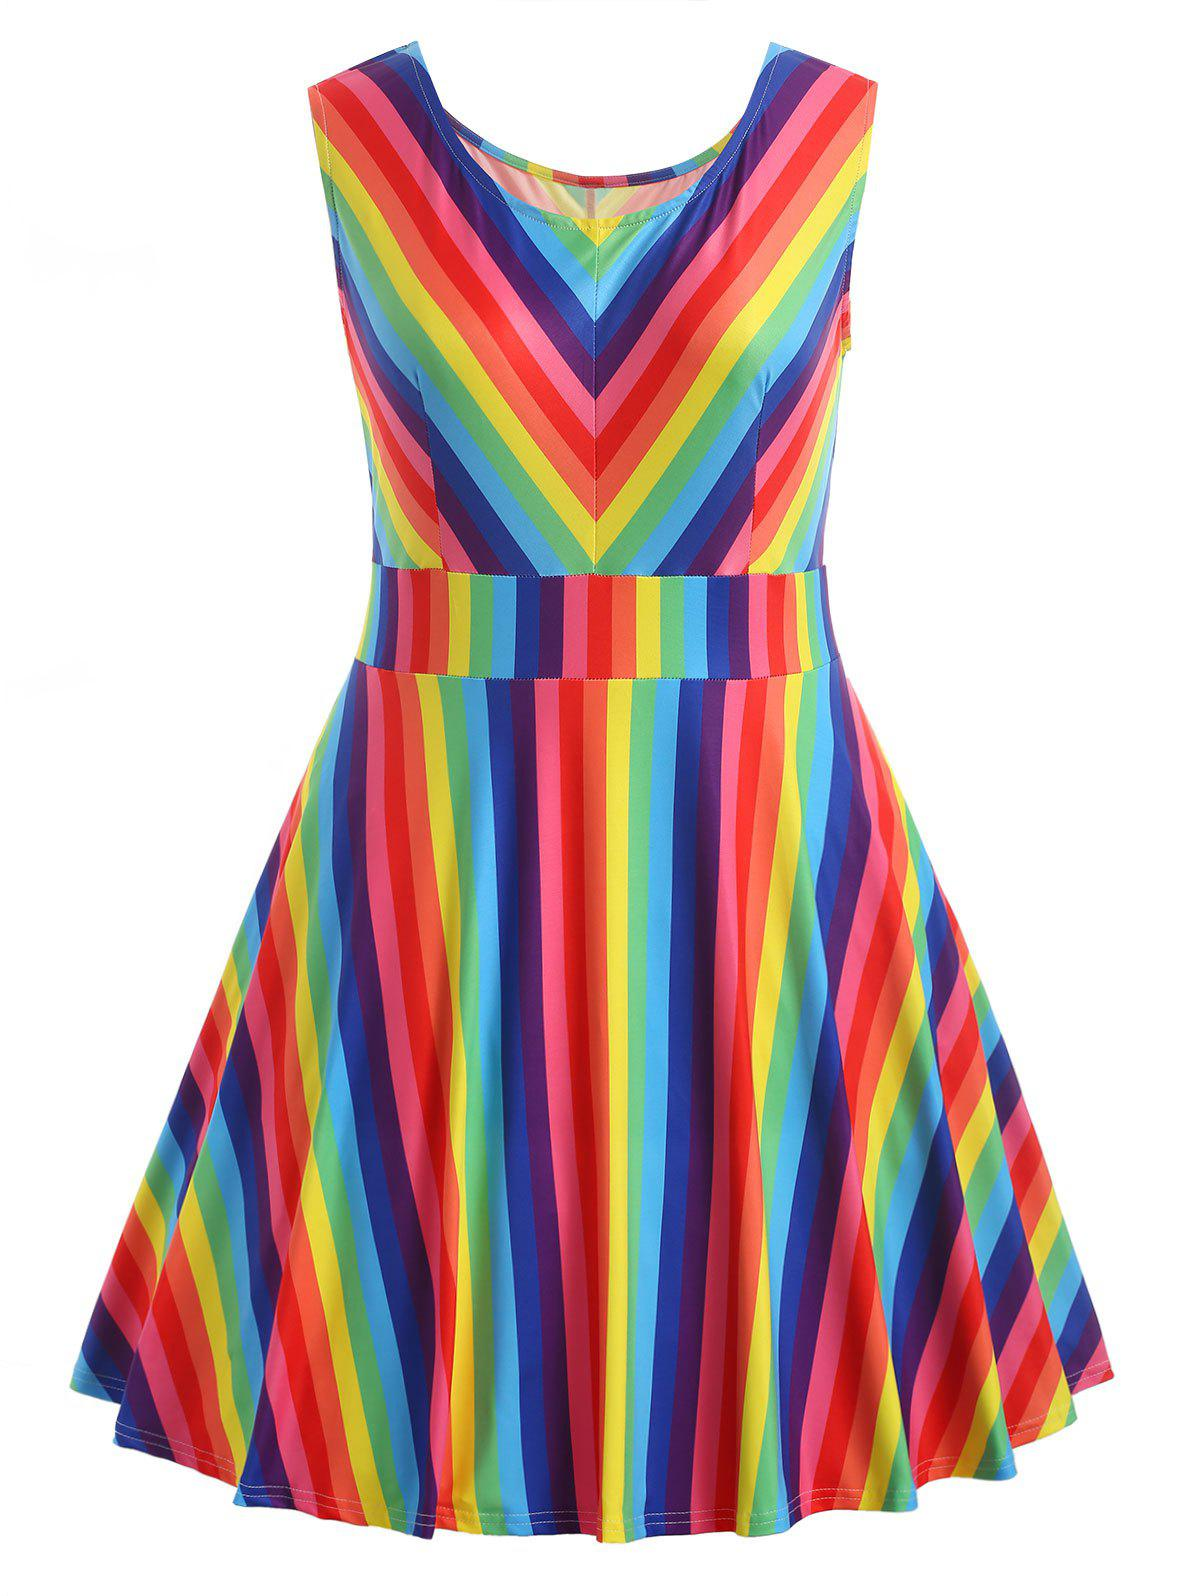 Rainbows clothing store dresses